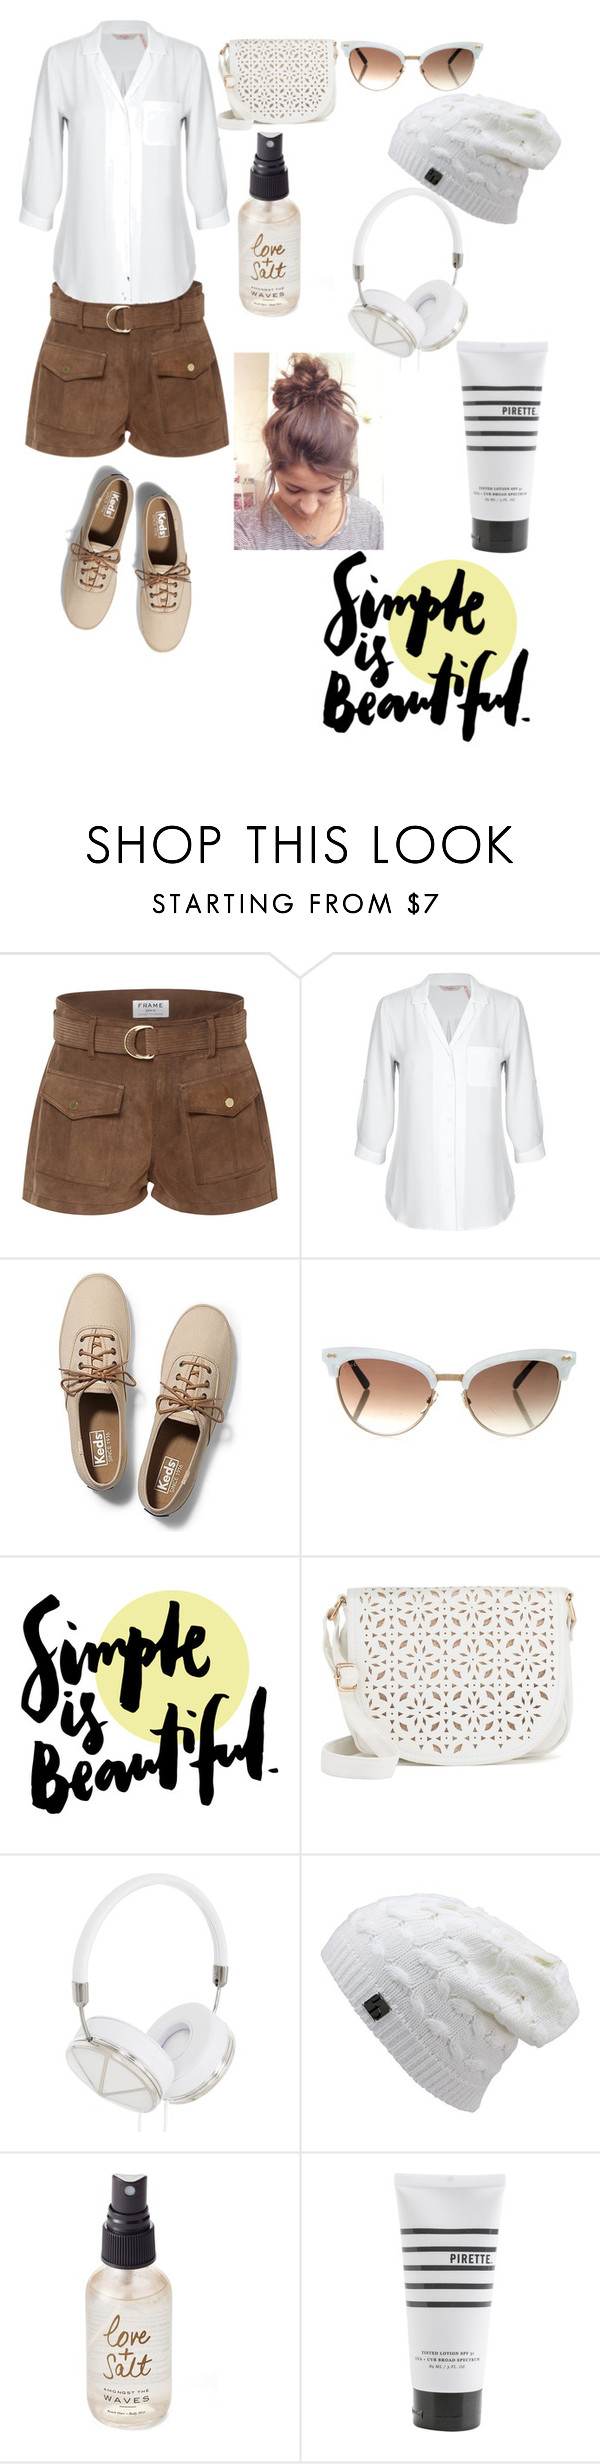 """""""As White as it'll Ever Be."""" by jenniferchang527 ❤ liked on Polyvore featuring beauty, Frame Denim, Keds, Gucci, Under One Sky, Frends, Olivine and Pirette"""